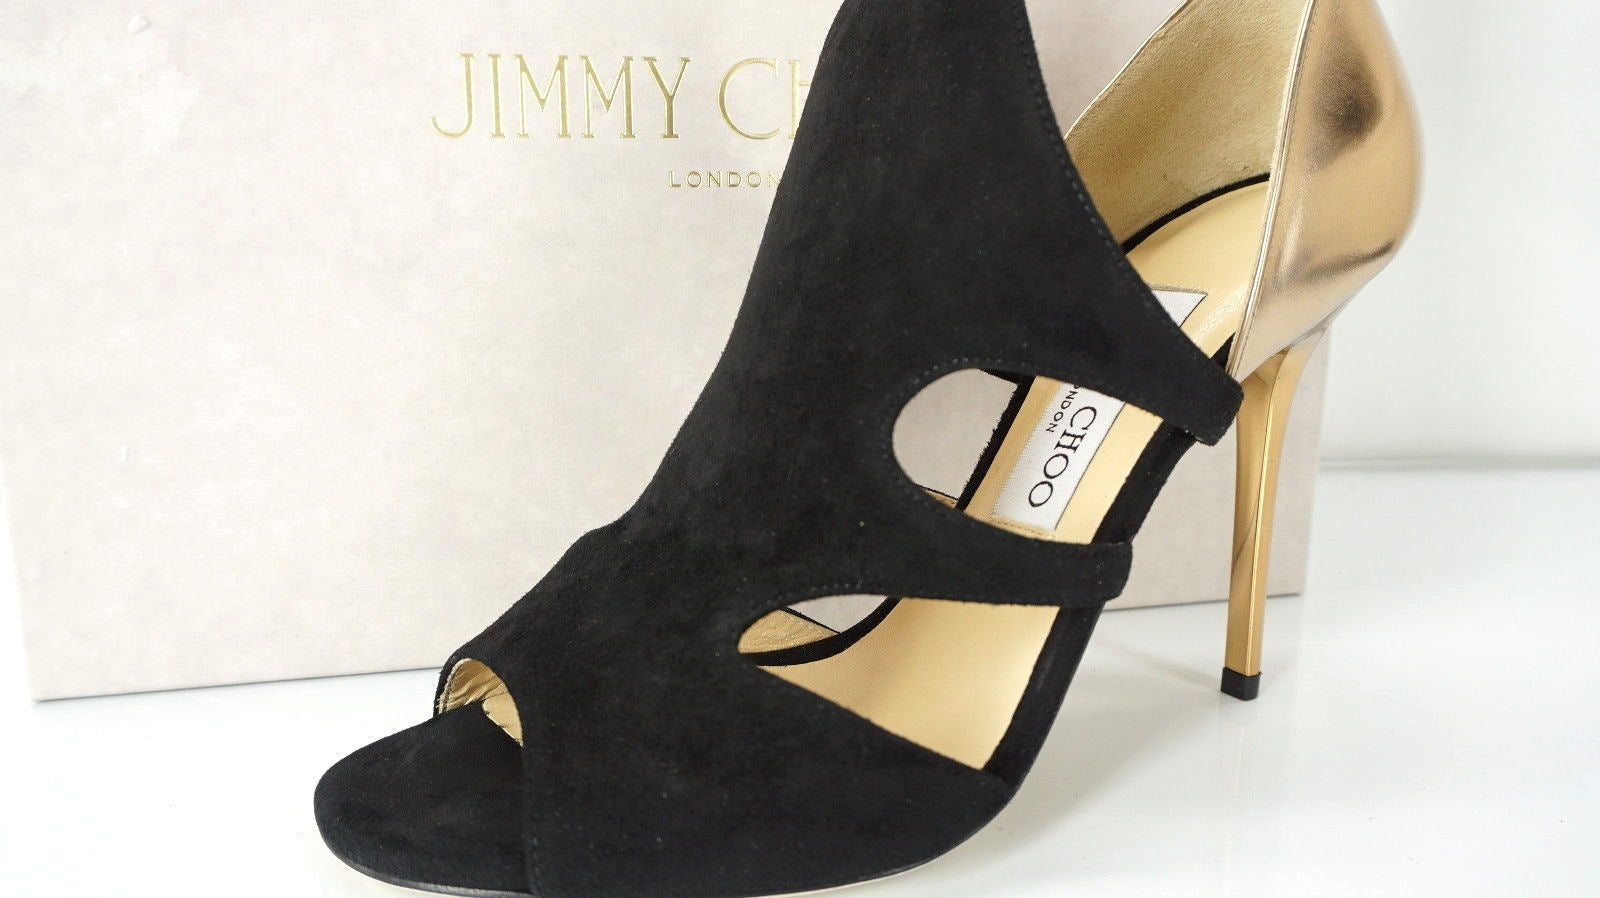 Jimmy Choo Tarine Black Suede Gold Leather Open Toe Cut Out Sandals SZ 38.5 $895